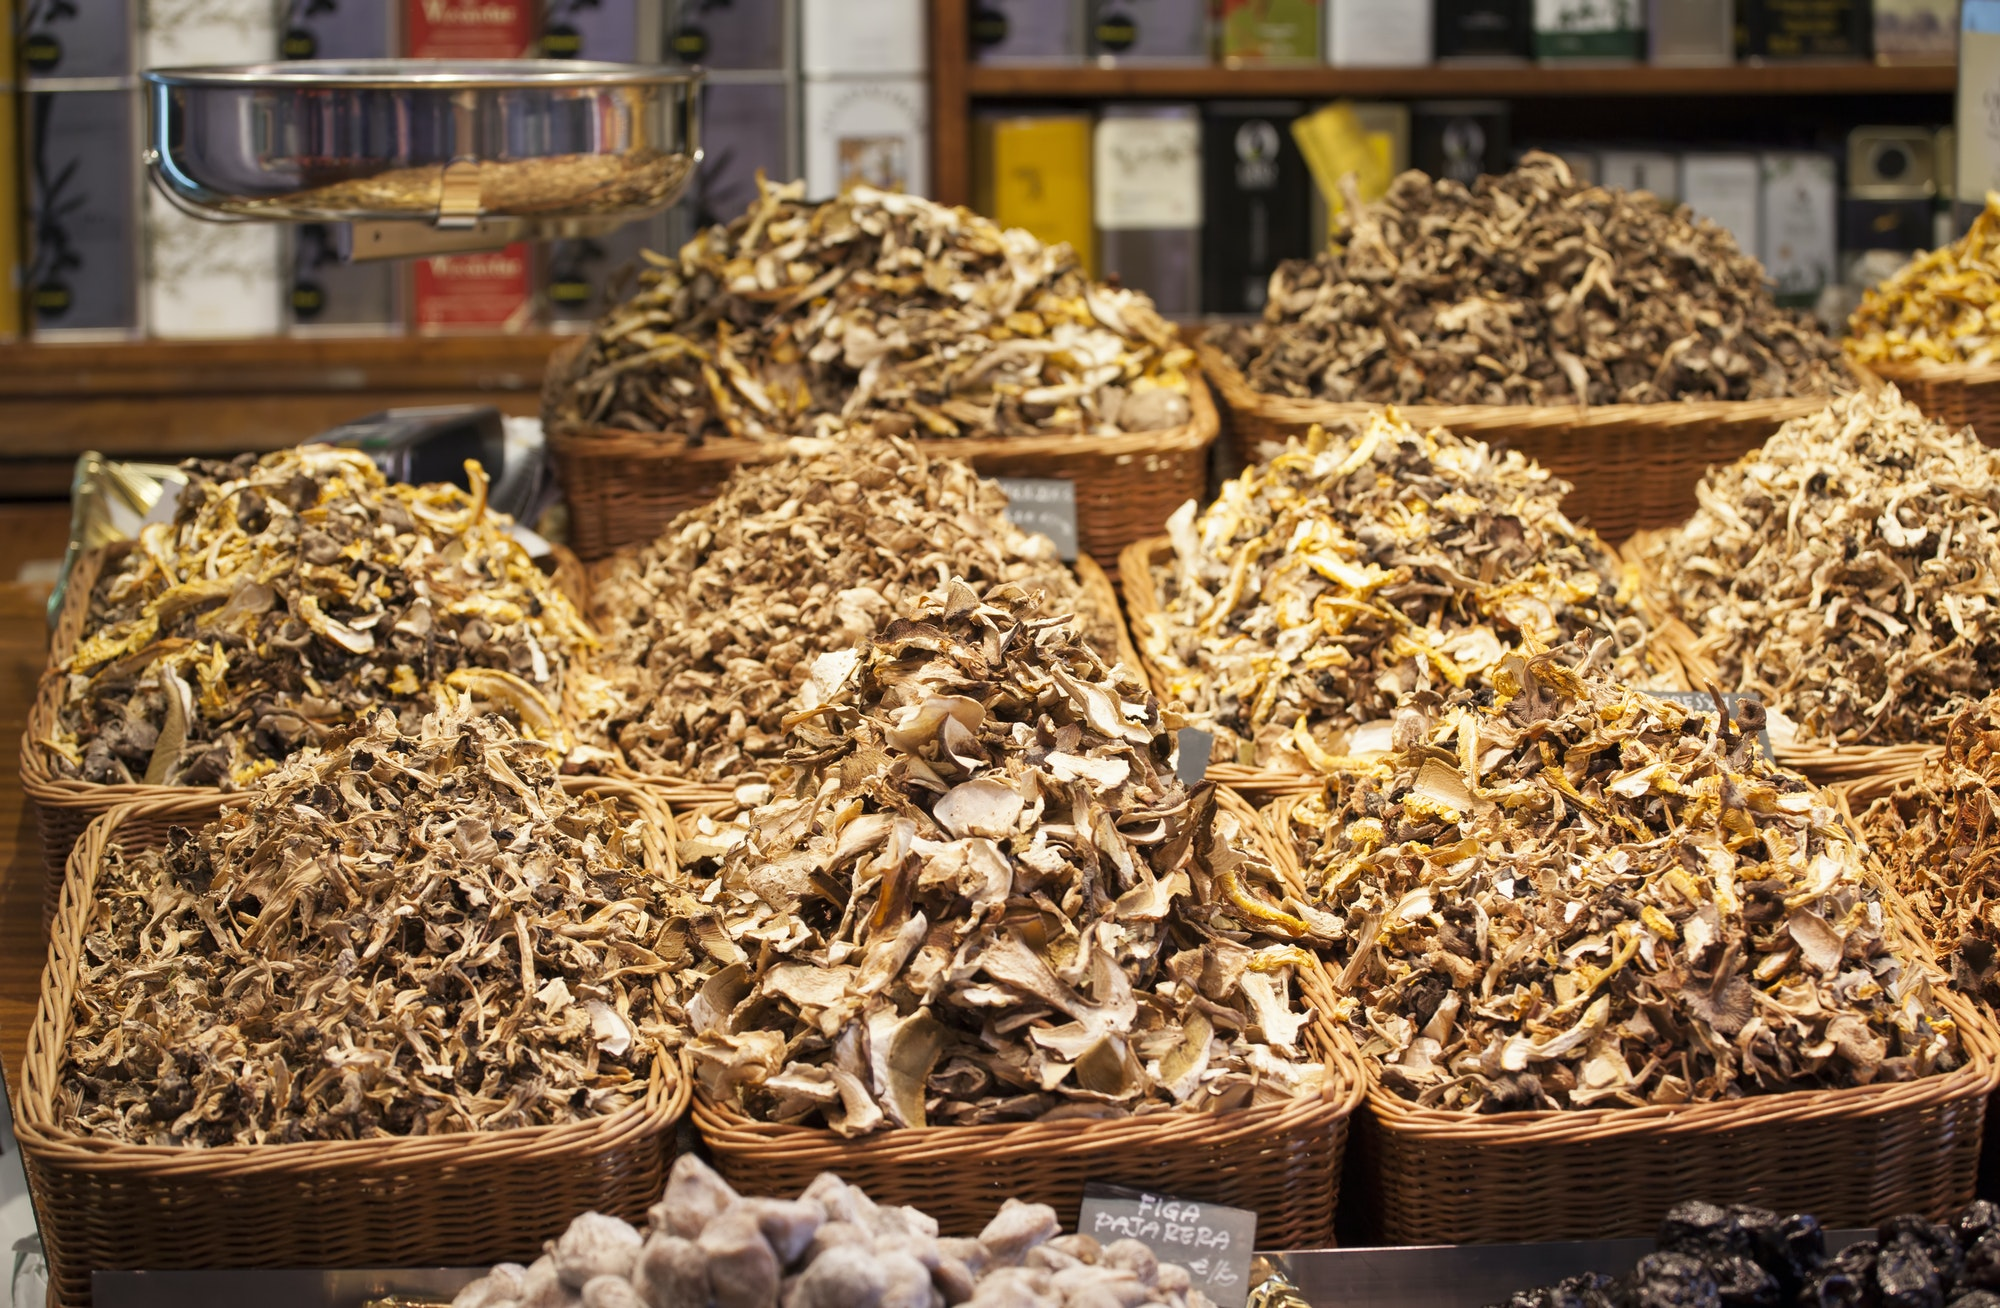 Dried mushrooms exposed in a market